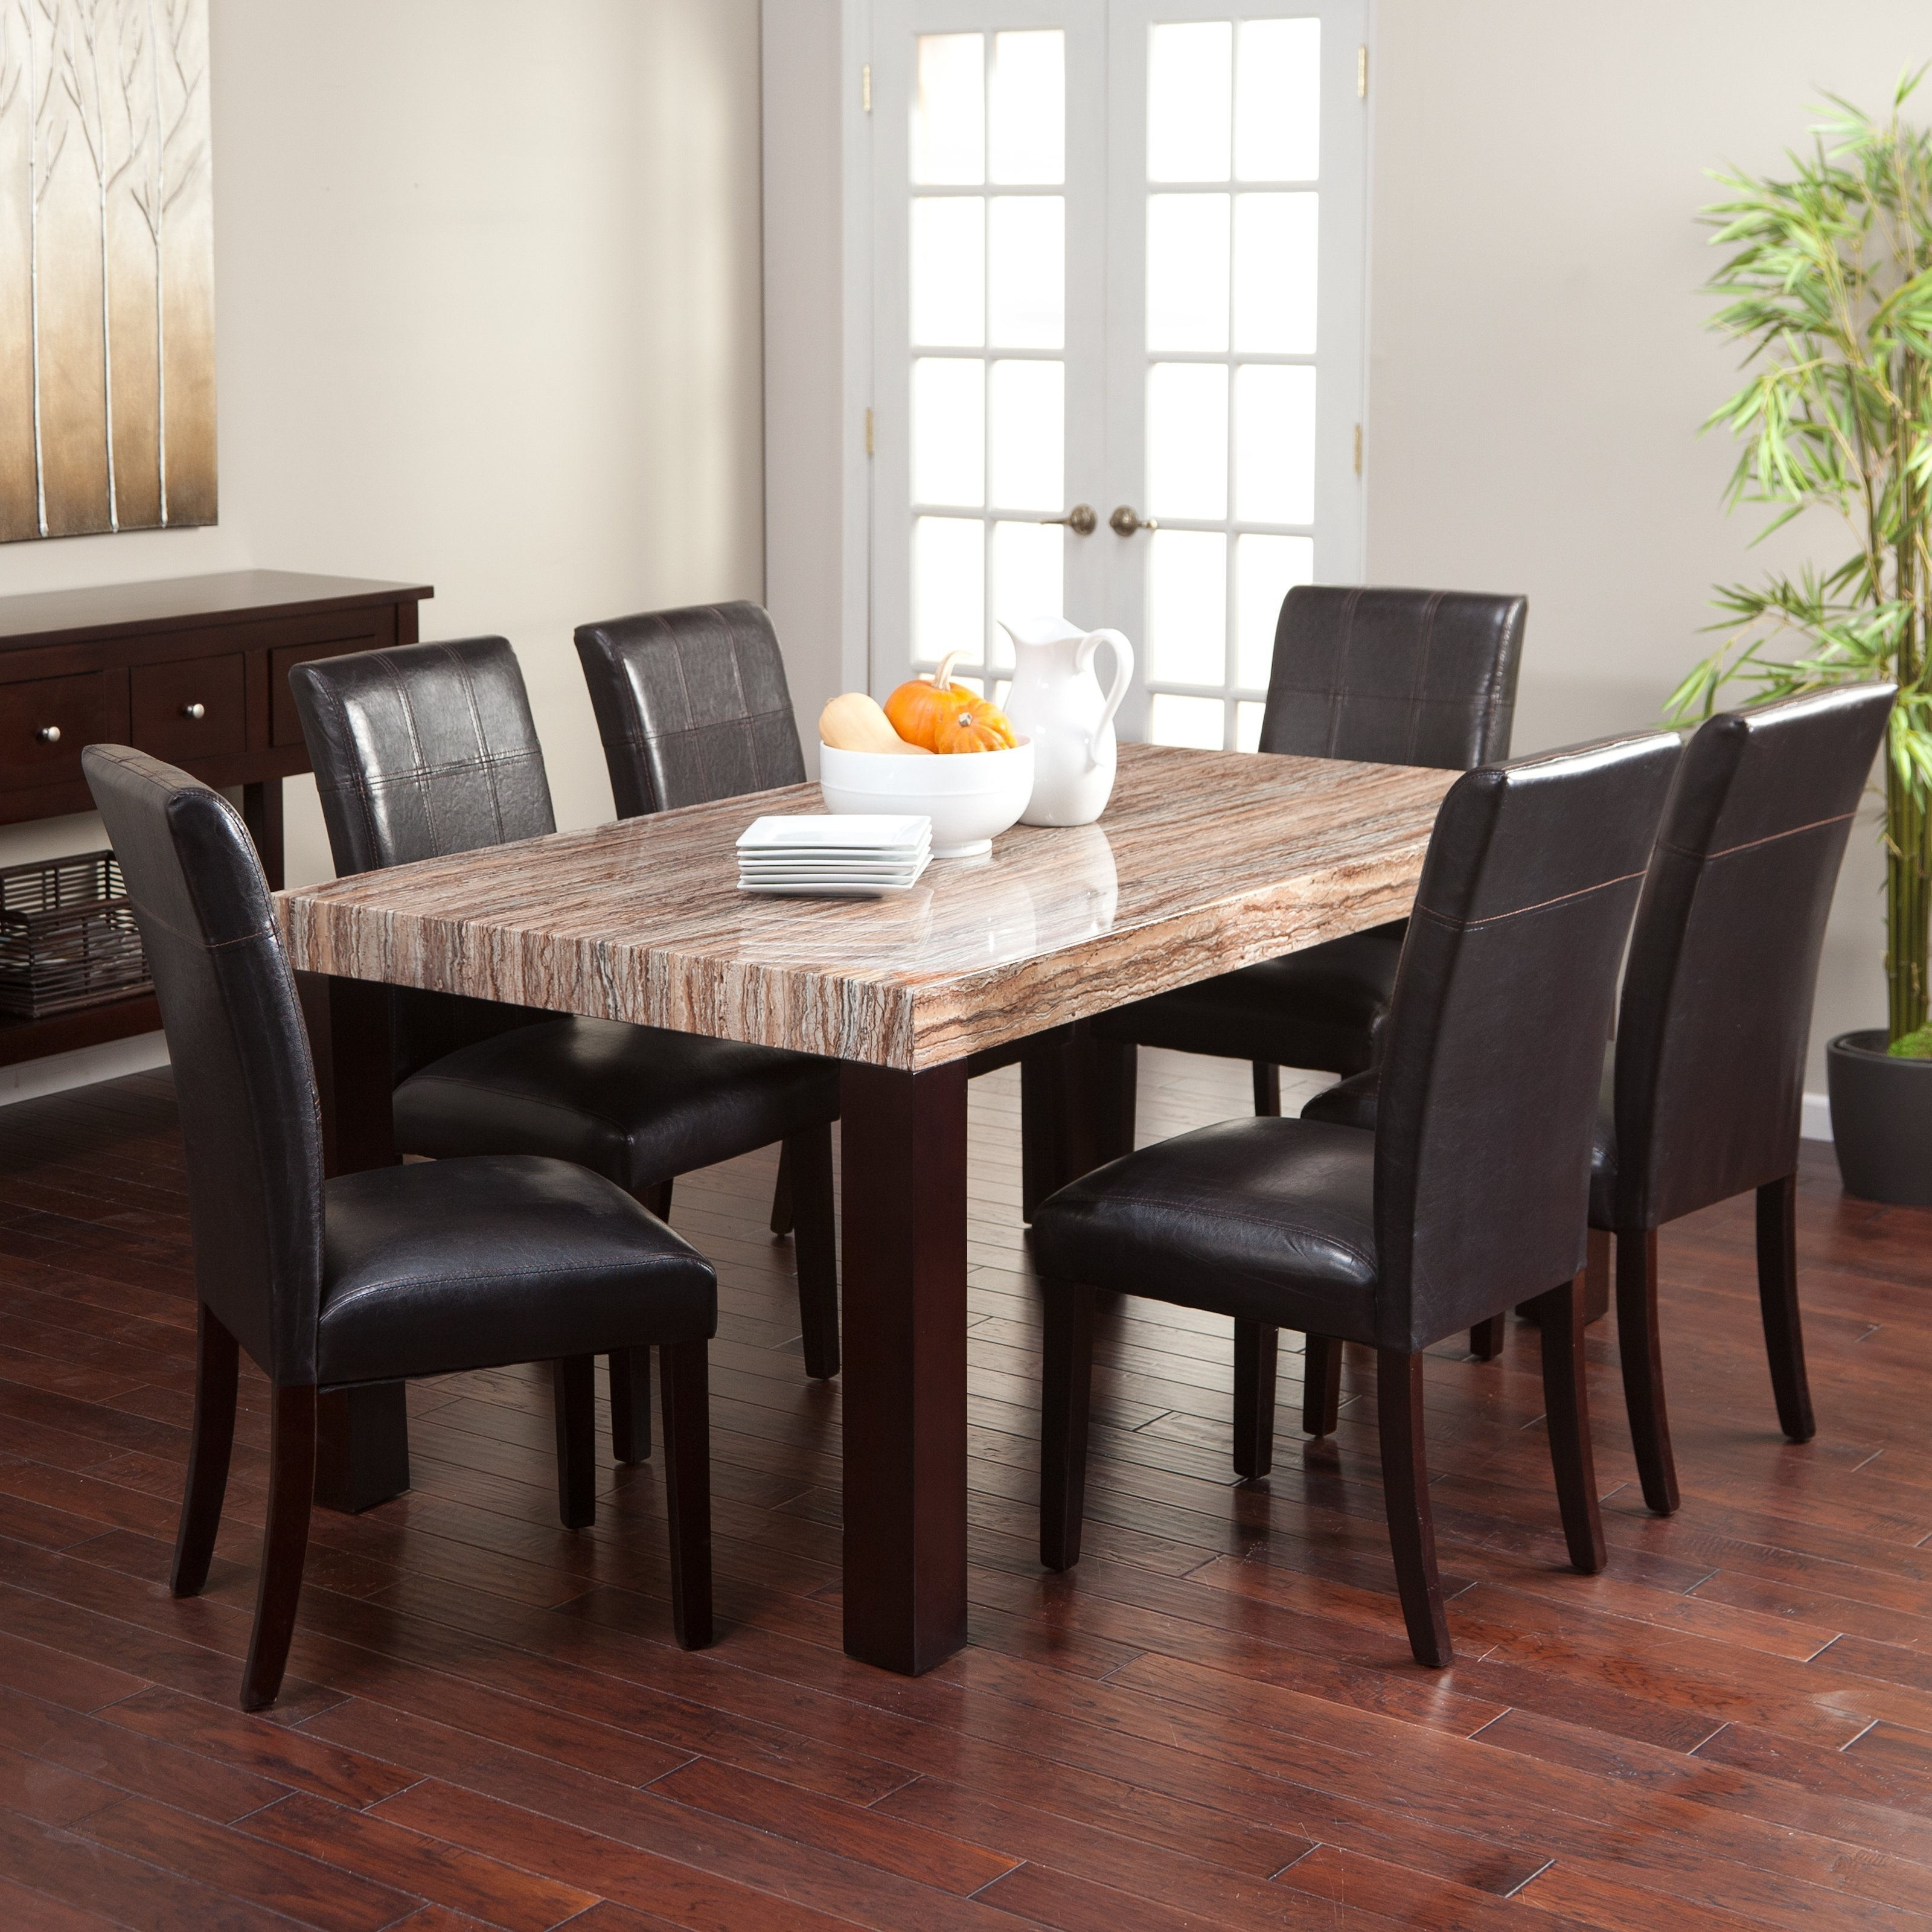 O – Itfoxy Intended For Latest Norwood 7 Piece Rectangular Extension Dining Sets With Bench, Host & Side Chairs (View 19 of 20)